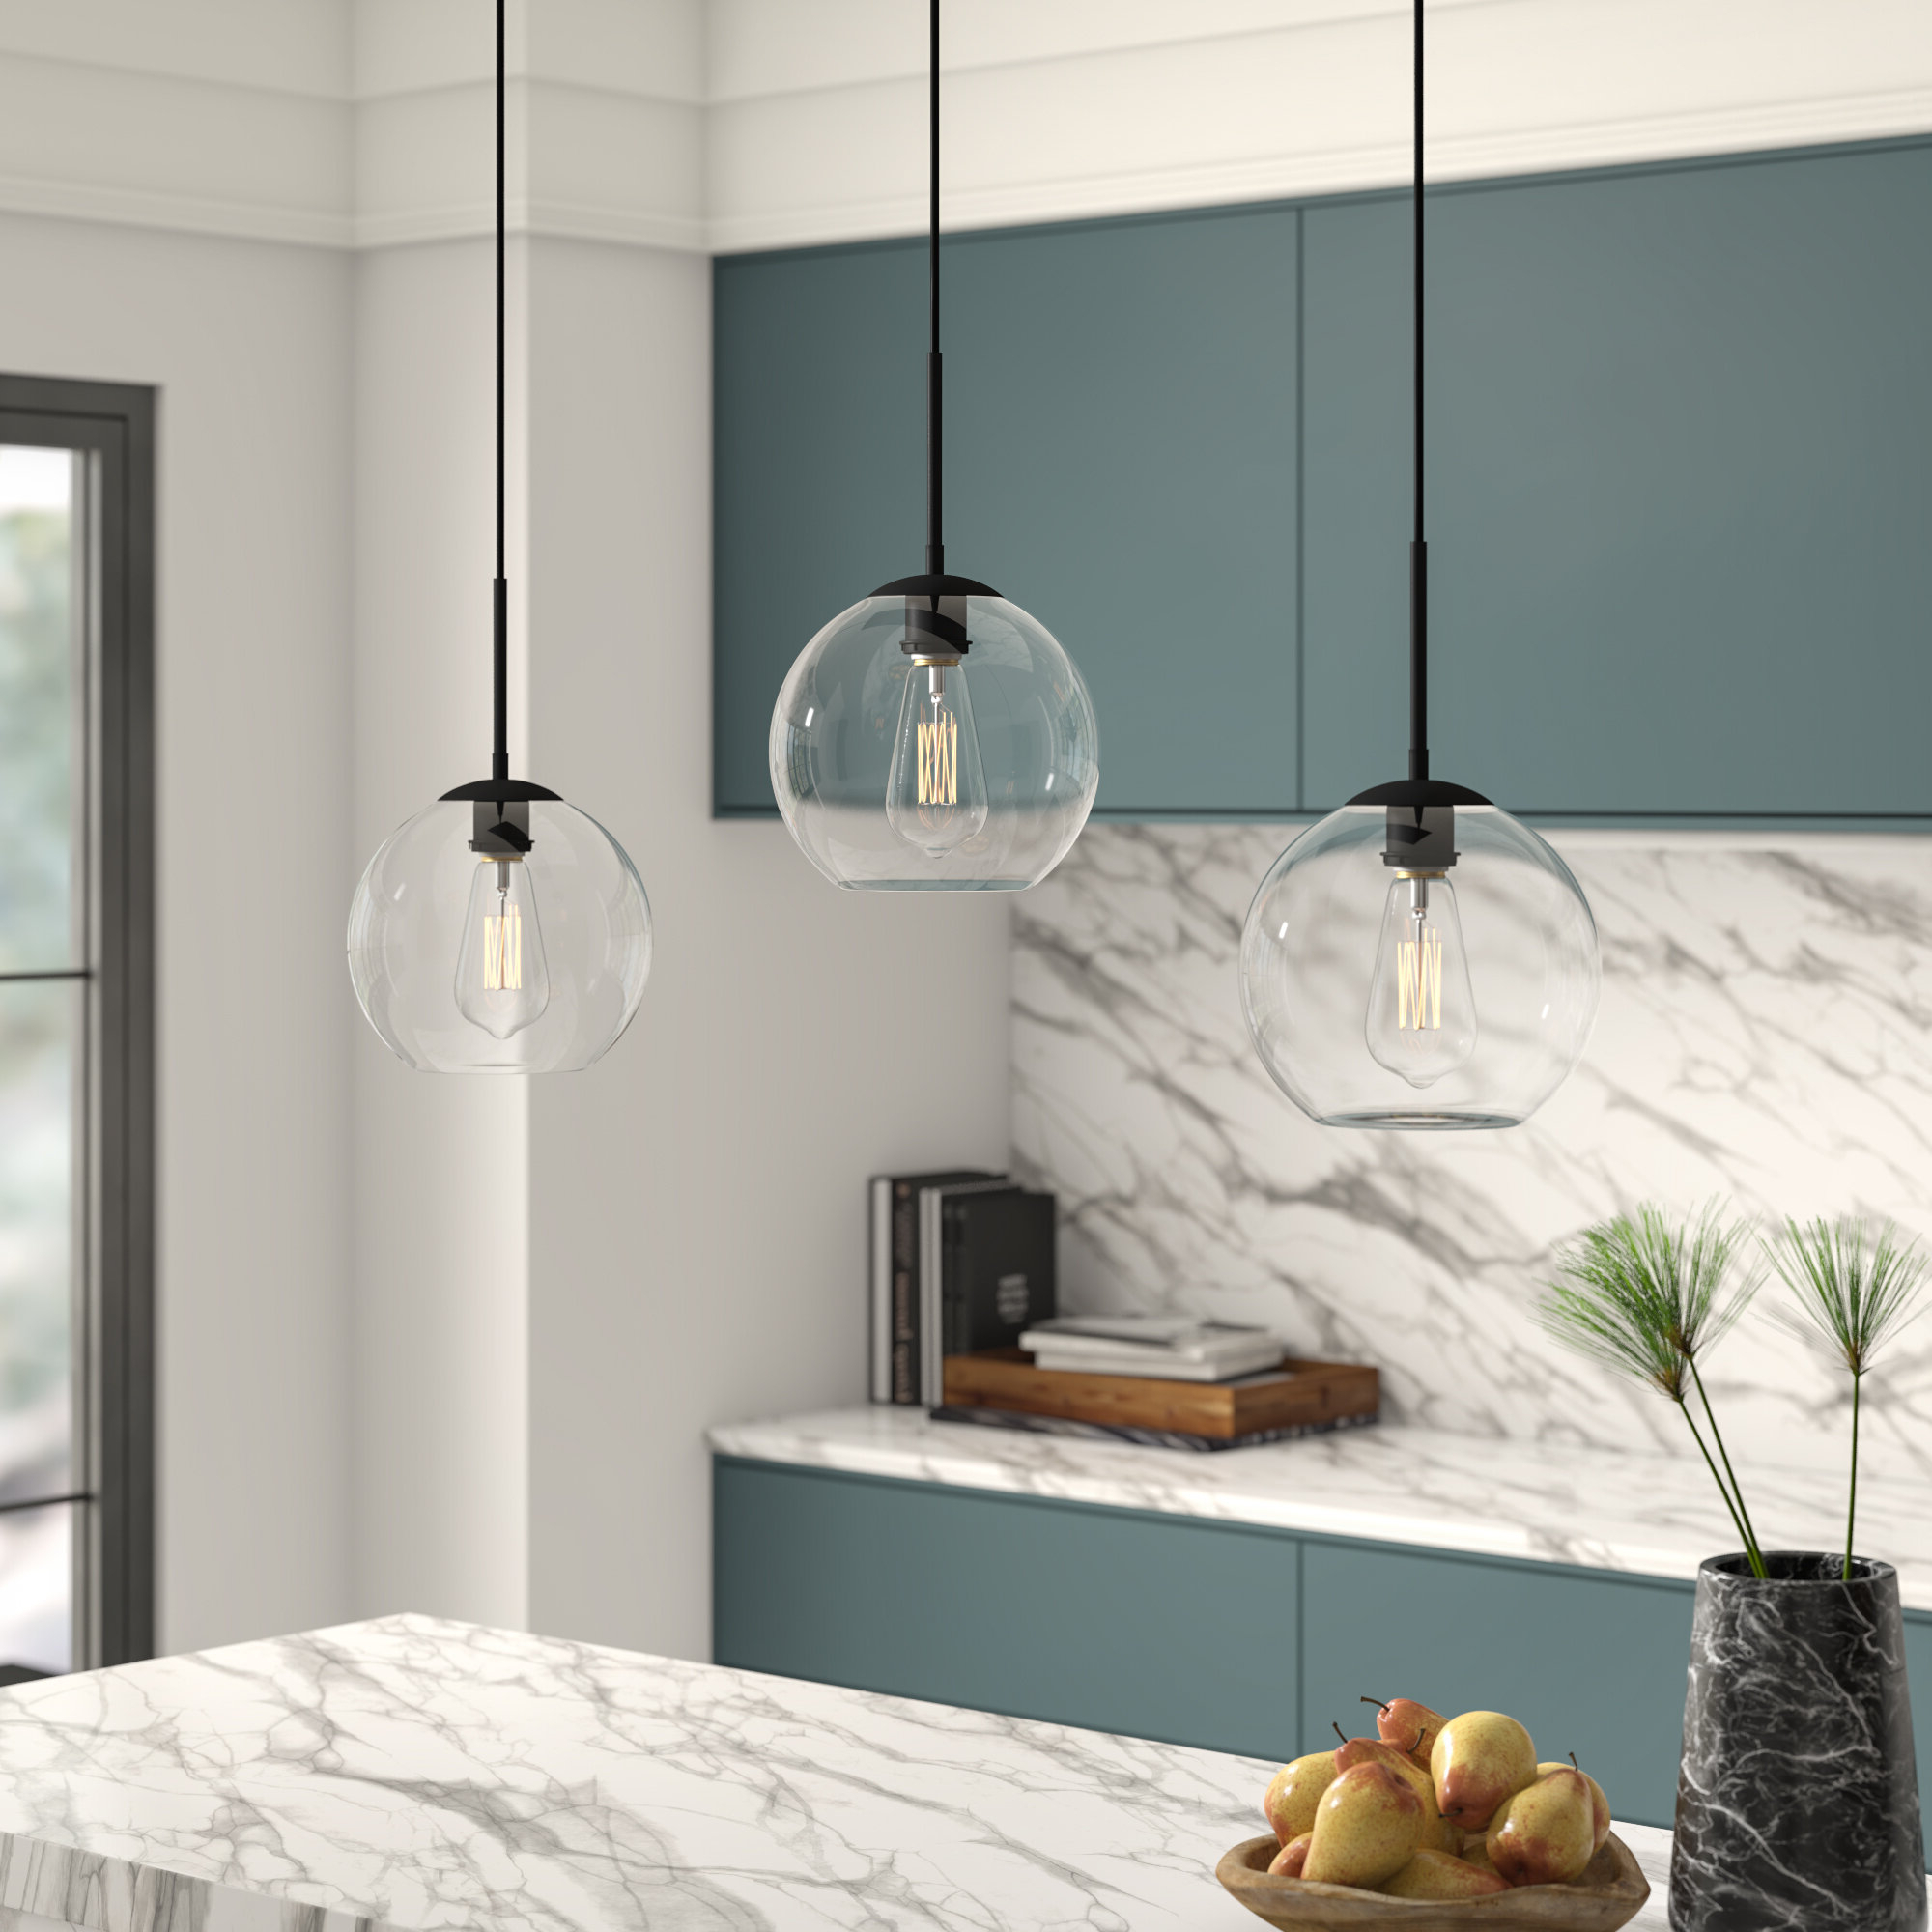 Schutt 5 Light Cluster Pendants Regarding Most Popular 5 Cluster Pendant Light (View 7 of 25)